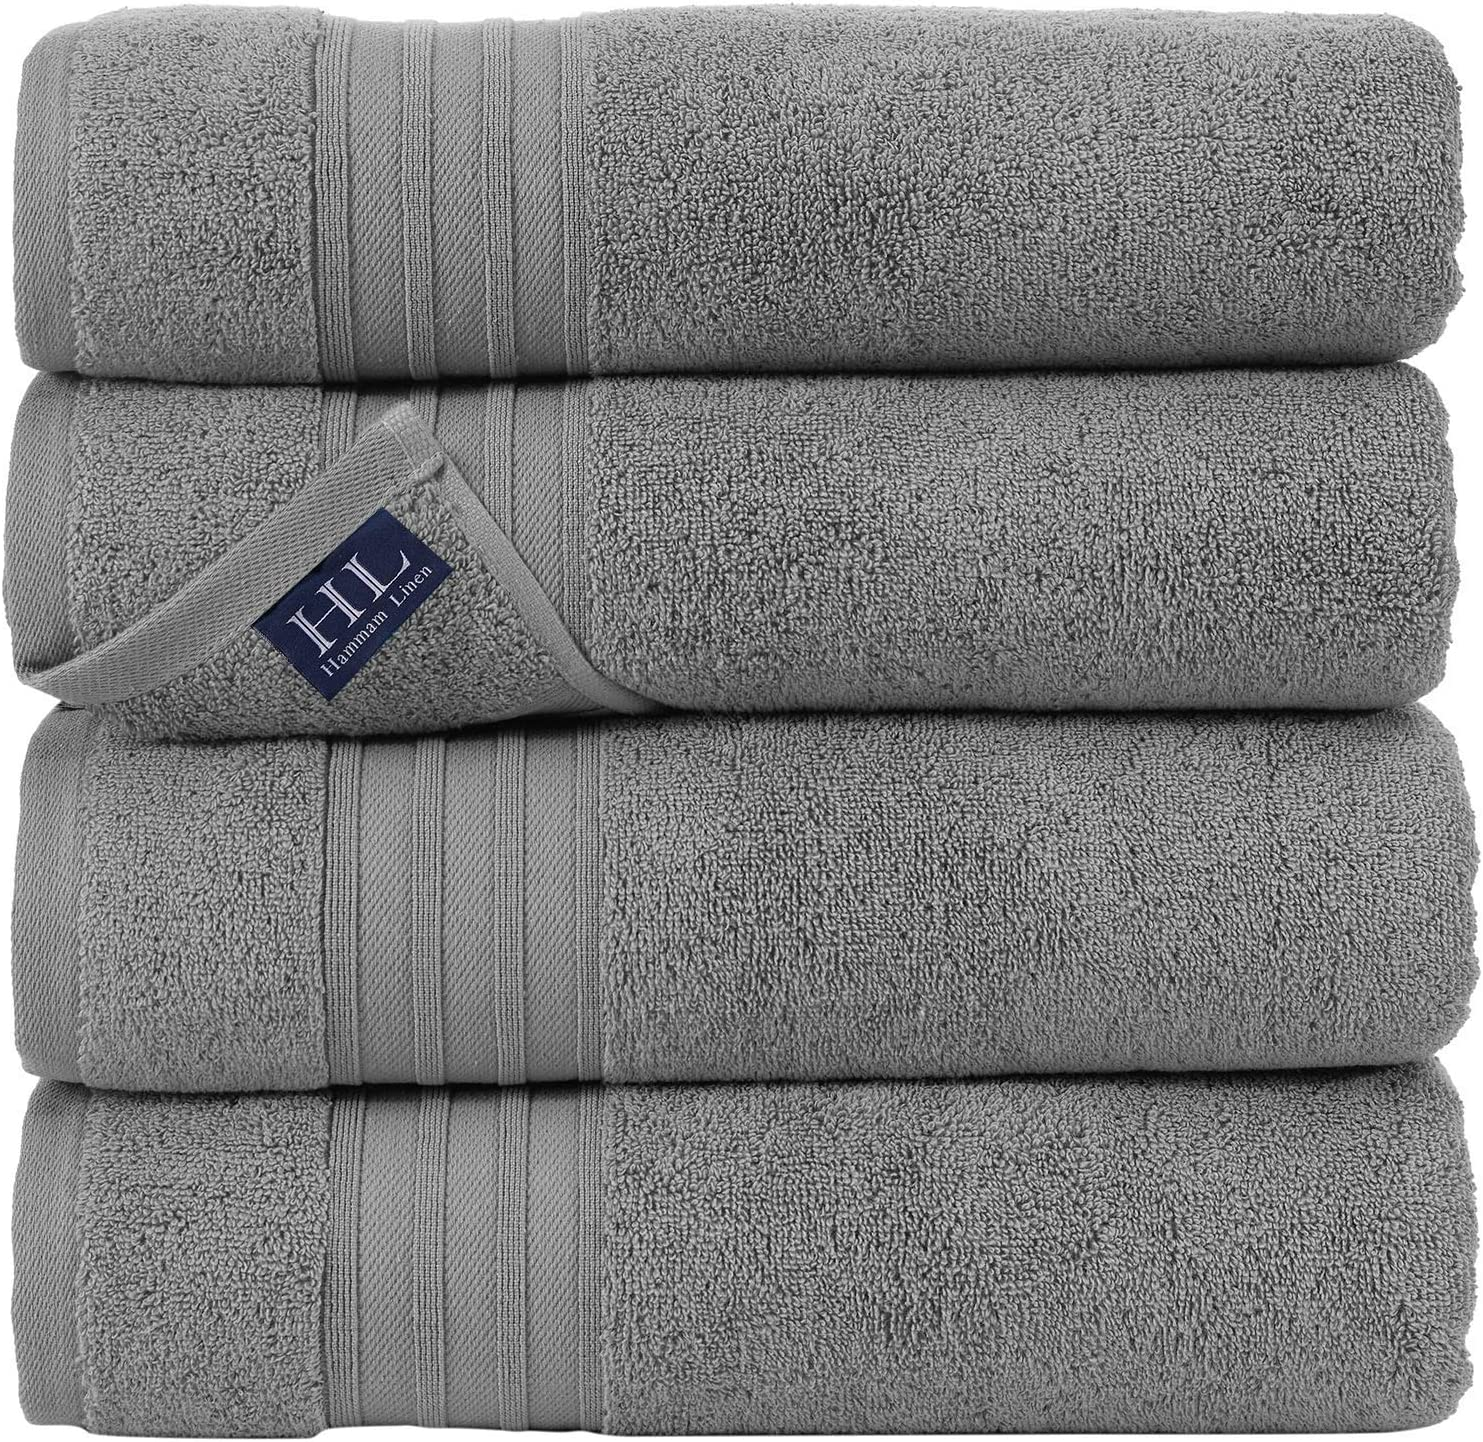 Hammam Linen 100% Cotton 27x54 4 Piece Set Bath Towels Cool Grey Soft and Absorbent, Premium Quality Perfect for Daily Use 100% Cotton Towels: Kitchen & Dining